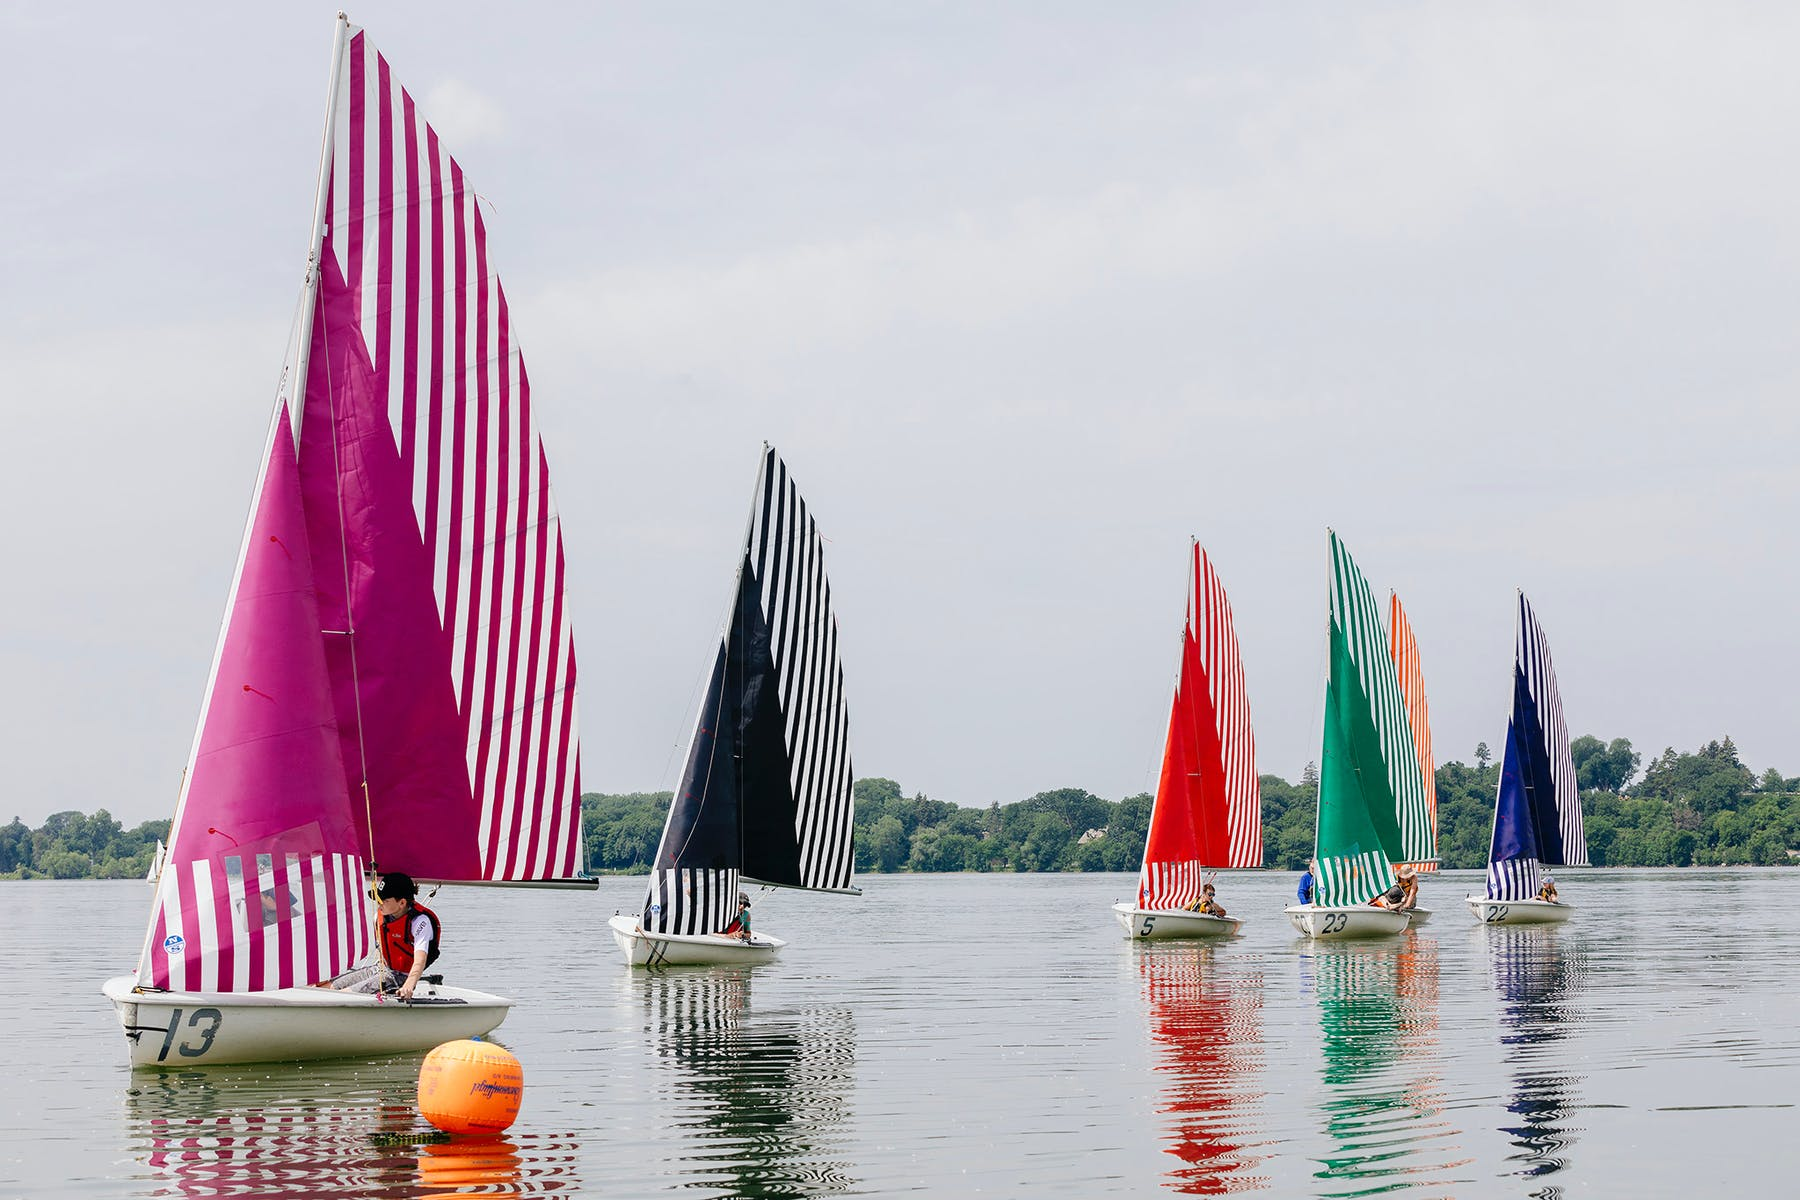 Daniel Buren's sails on sailboats in Lake Bde Maka Ska